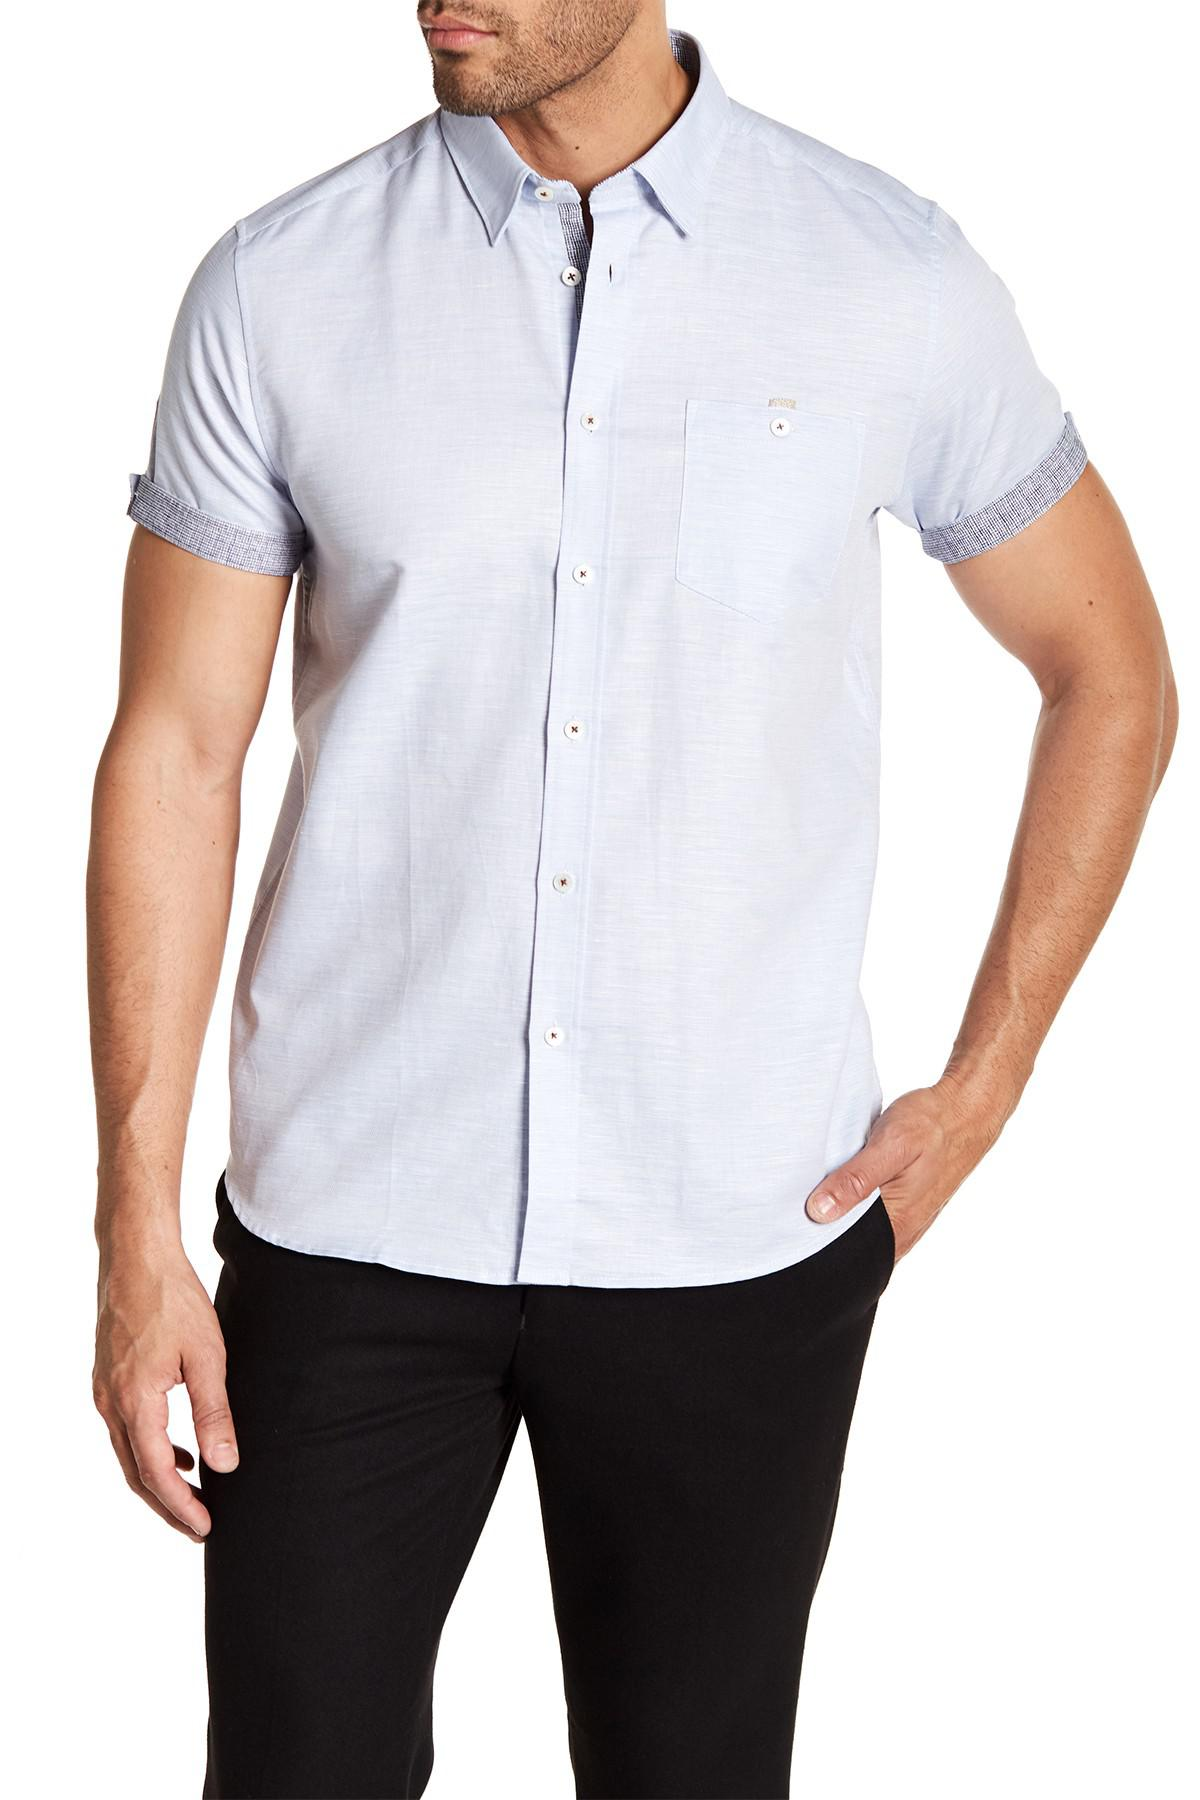 b1c0f7a5ece93 Lyst - Ted Baker Palpin Textured Button Front Short Sleeve Shirt in ...